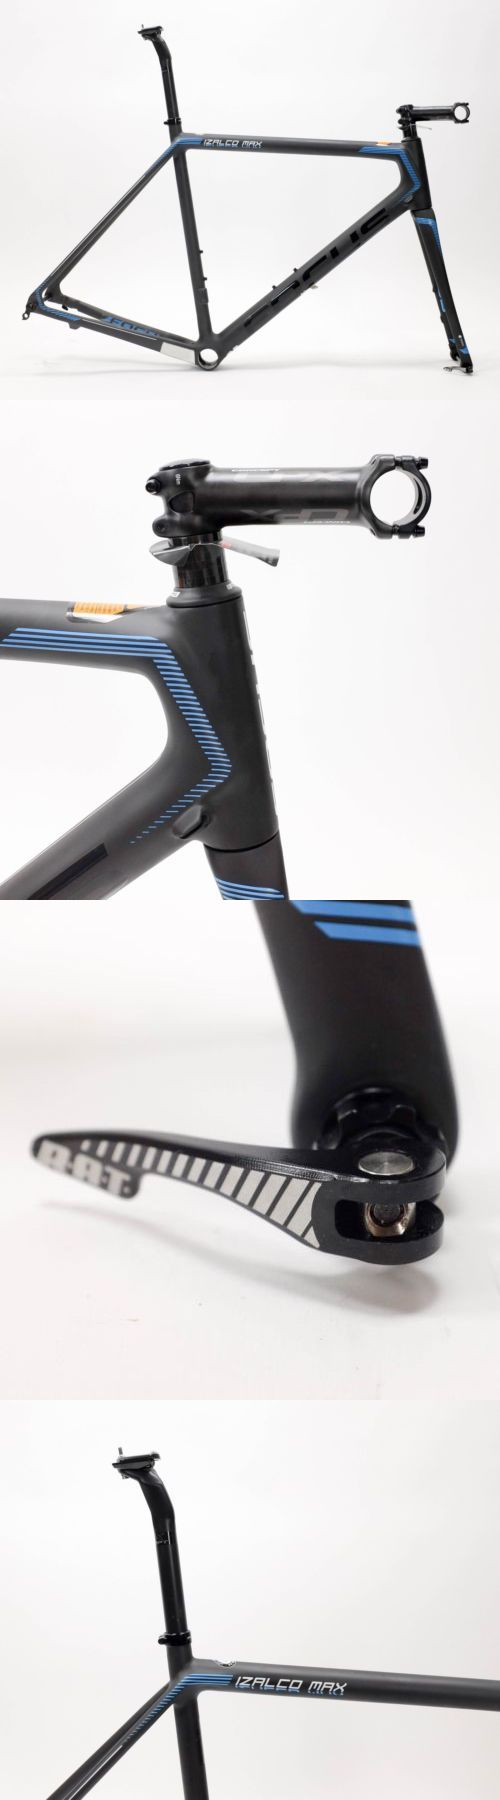 Bicycle Frames 22679: New 2016 Focus Izalco Max Disc 56Cm Road Bike Frame, Full Carbon Disc, Racing -> BUY IT NOW ONLY: $1979.99 on eBay!